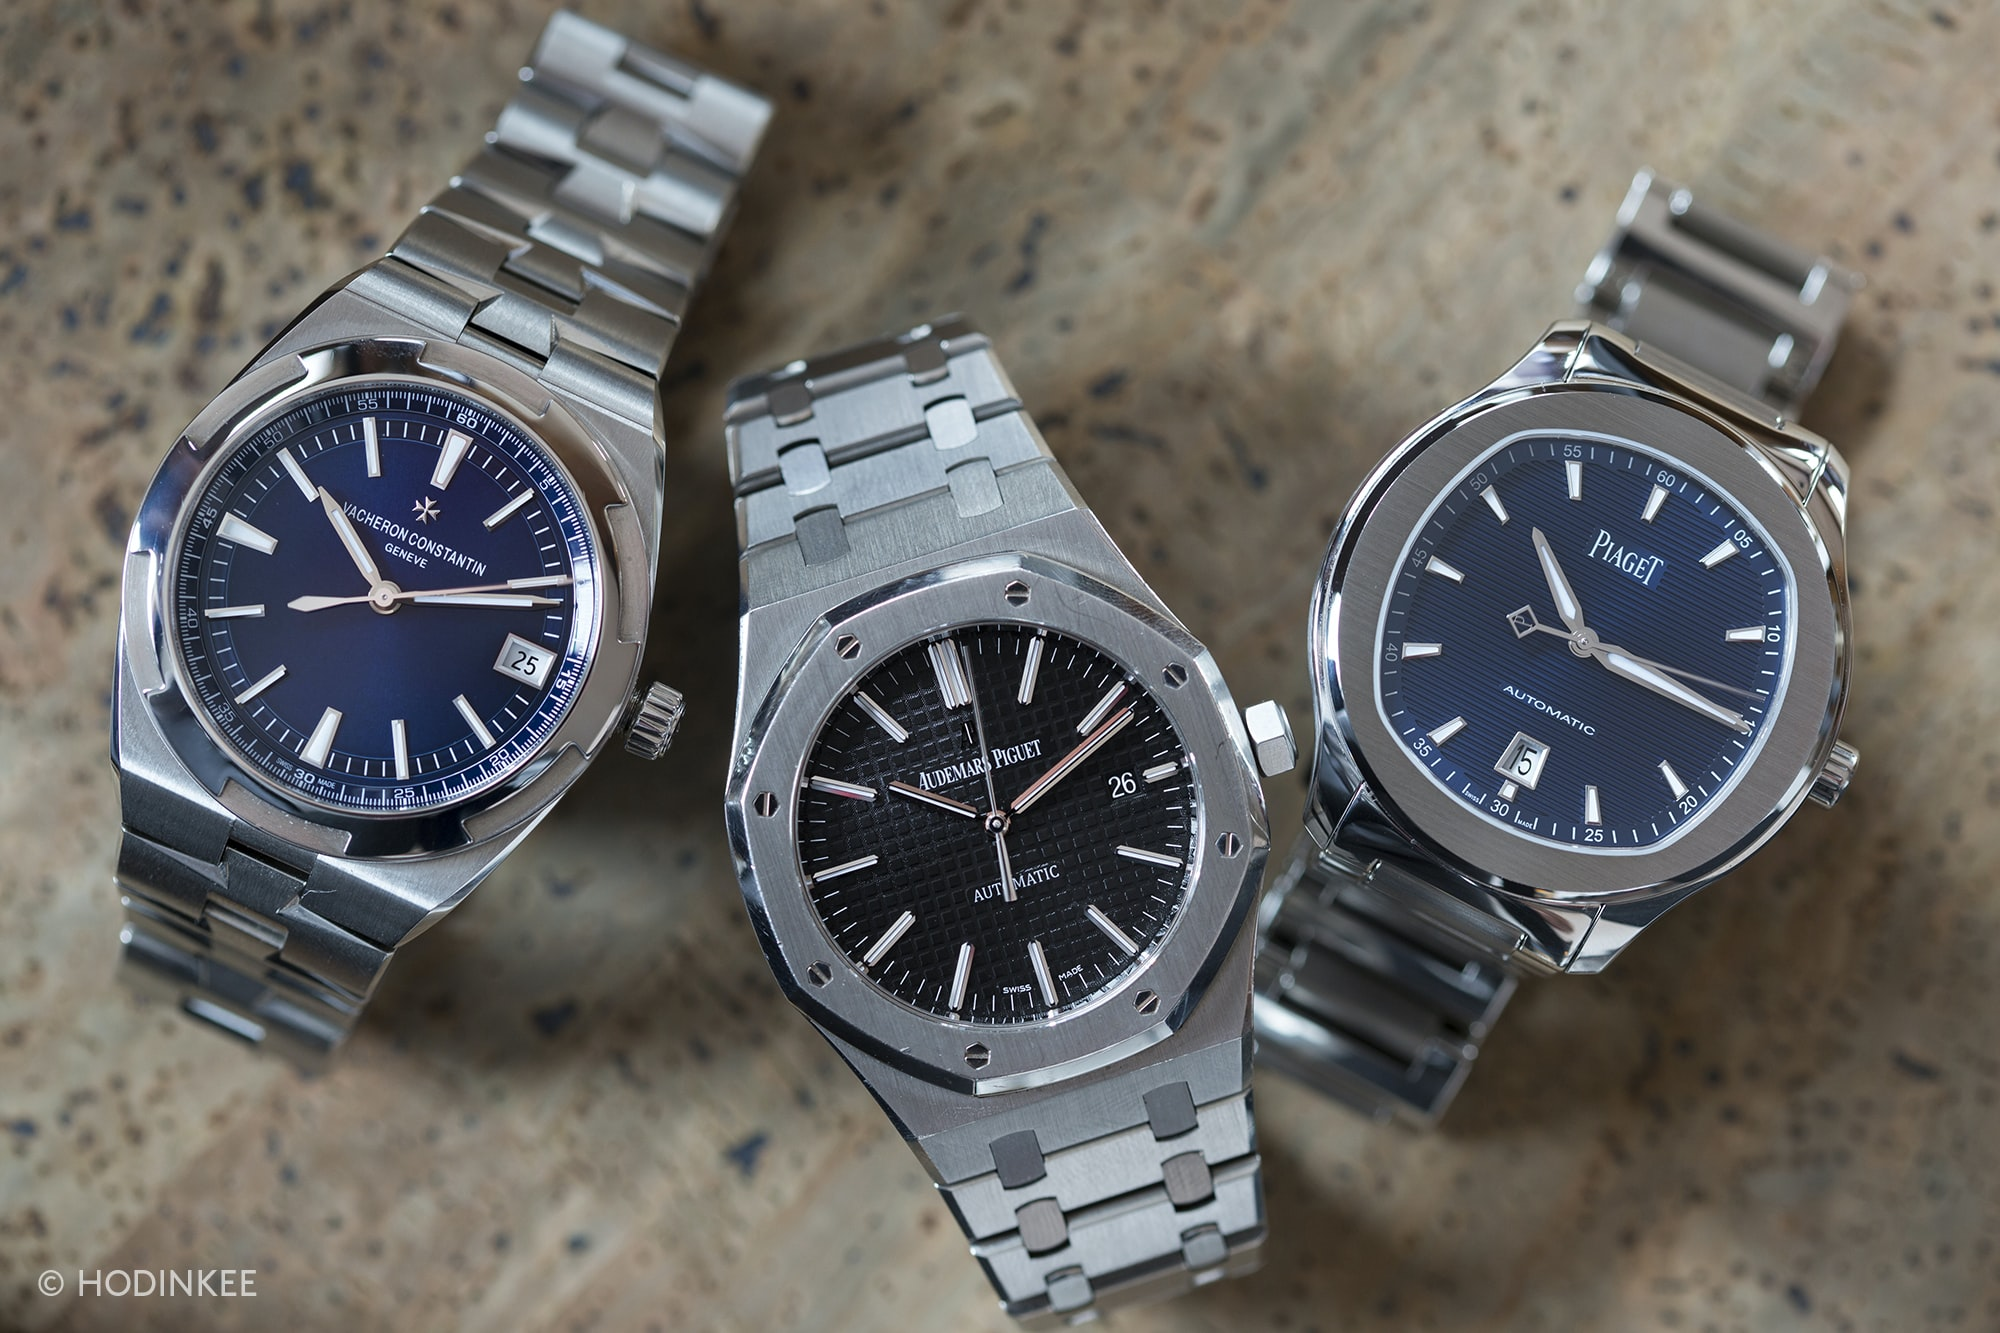 Three On Three: Comparing The Vacheron Constantin Overseas, The Piaget Polo S, And The Audemars Piguet Royal Oak 15400 Three On Three: Comparing The Vacheron Constantin Overseas, The Piaget Polo S, And The Audemars Piguet Royal Oak 15400 20012694 copy